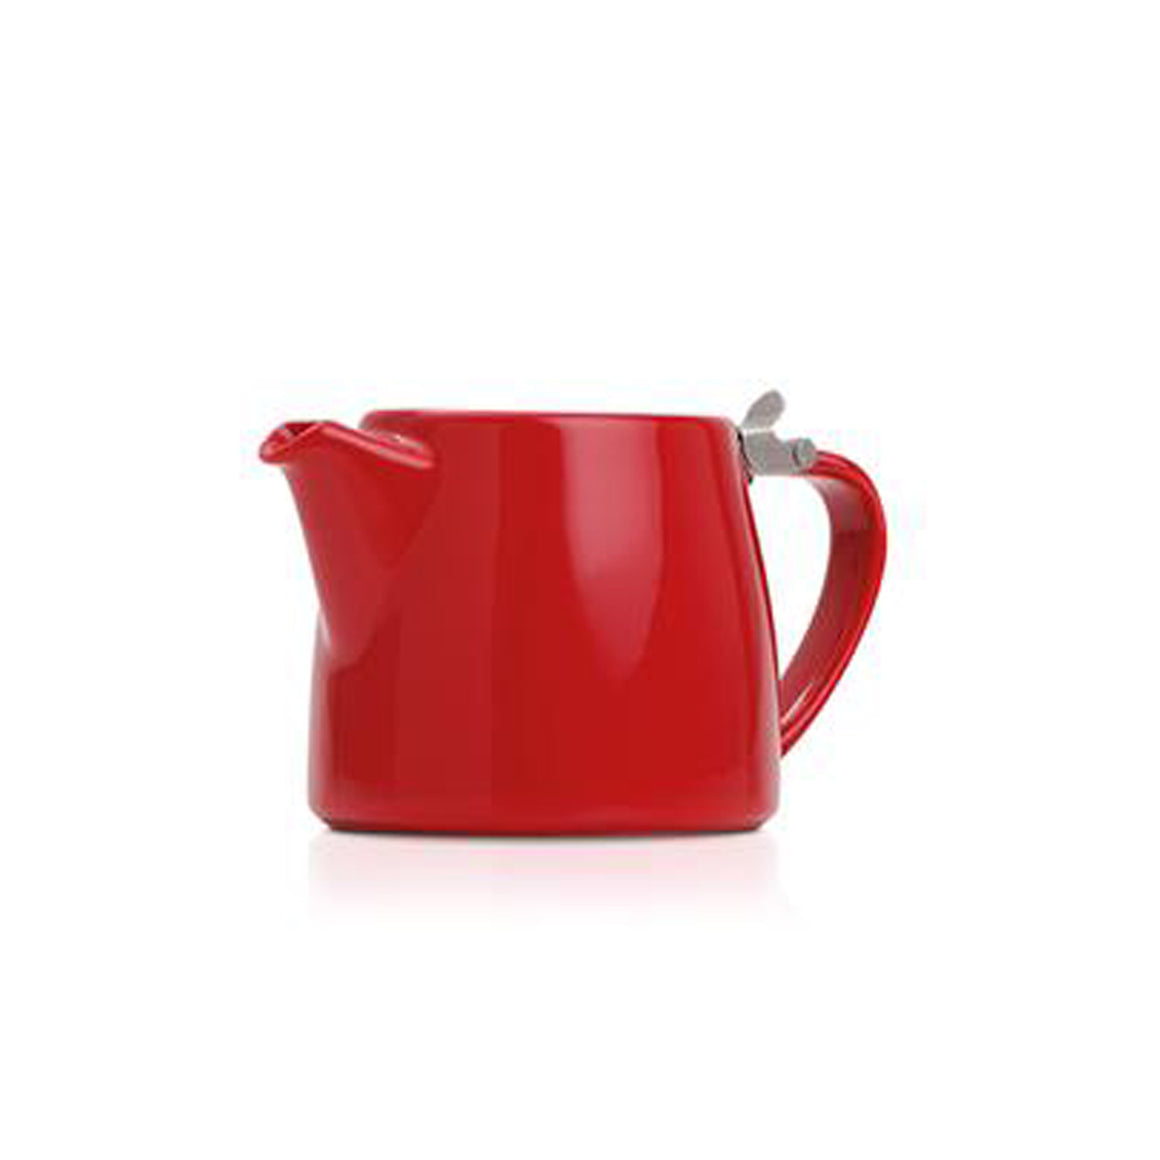 Forlife Red Stump Teapot 18oz